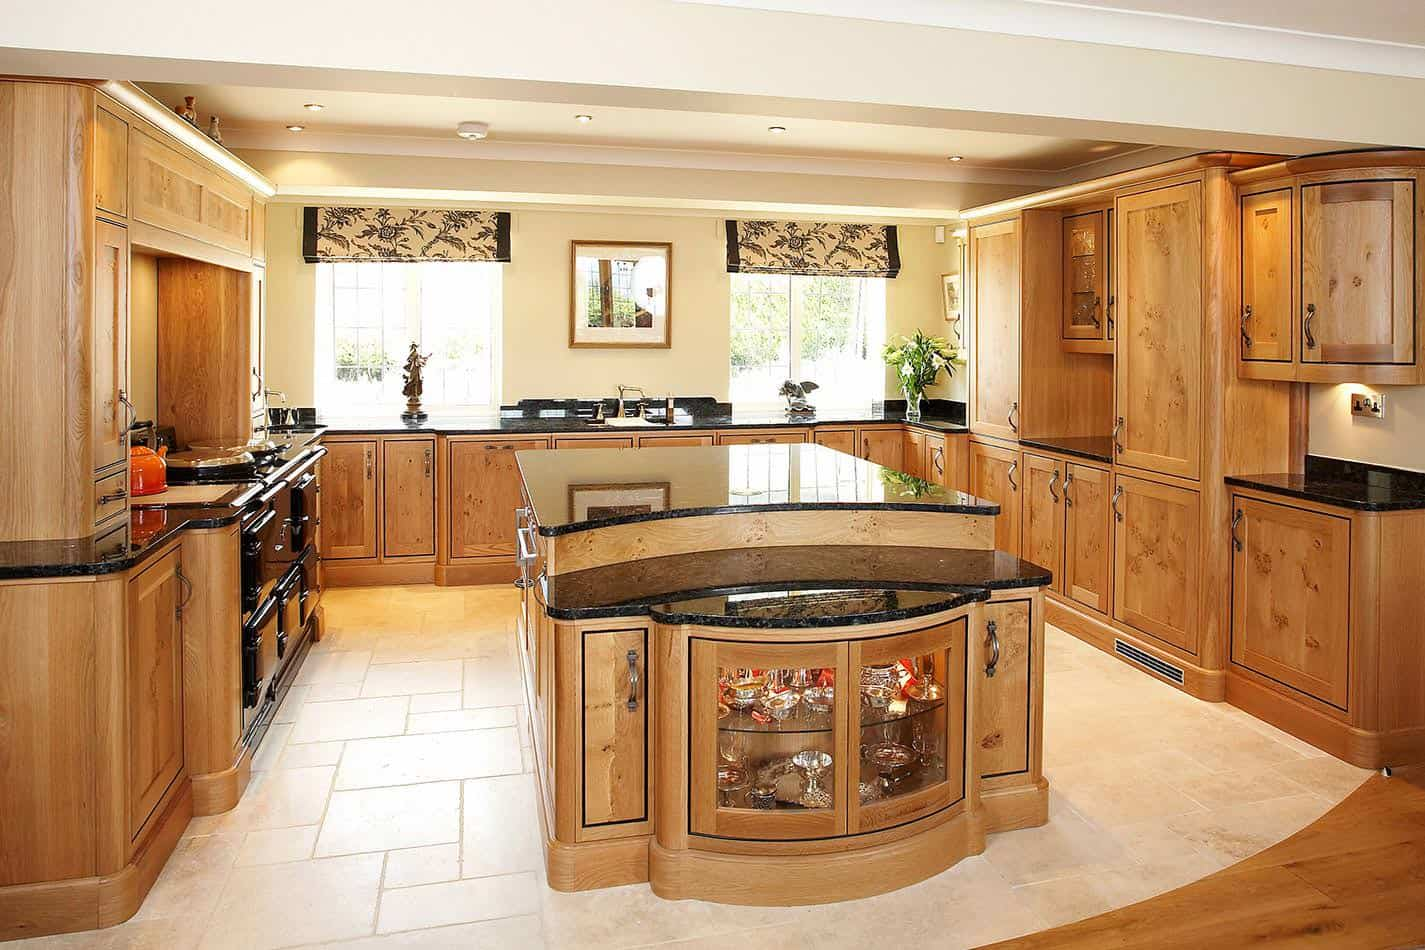 A brown U-shaped kitchen with a large center island with built-in shelving and cabinetry. The counters and the island boast black marble countertops.